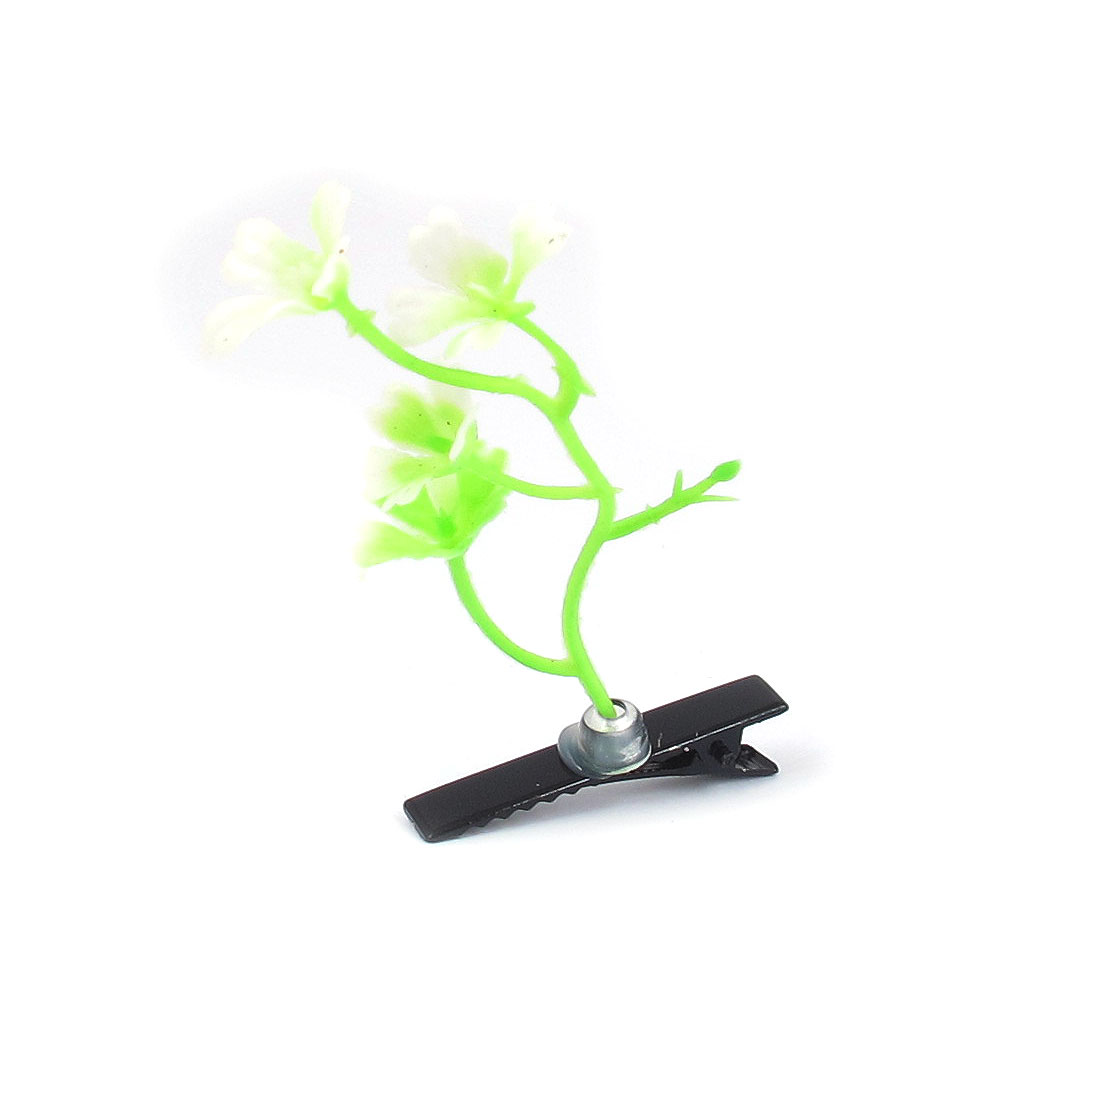 Flower Plant Antenna Hair Clips Hairpins Yellow Green for Girls Children